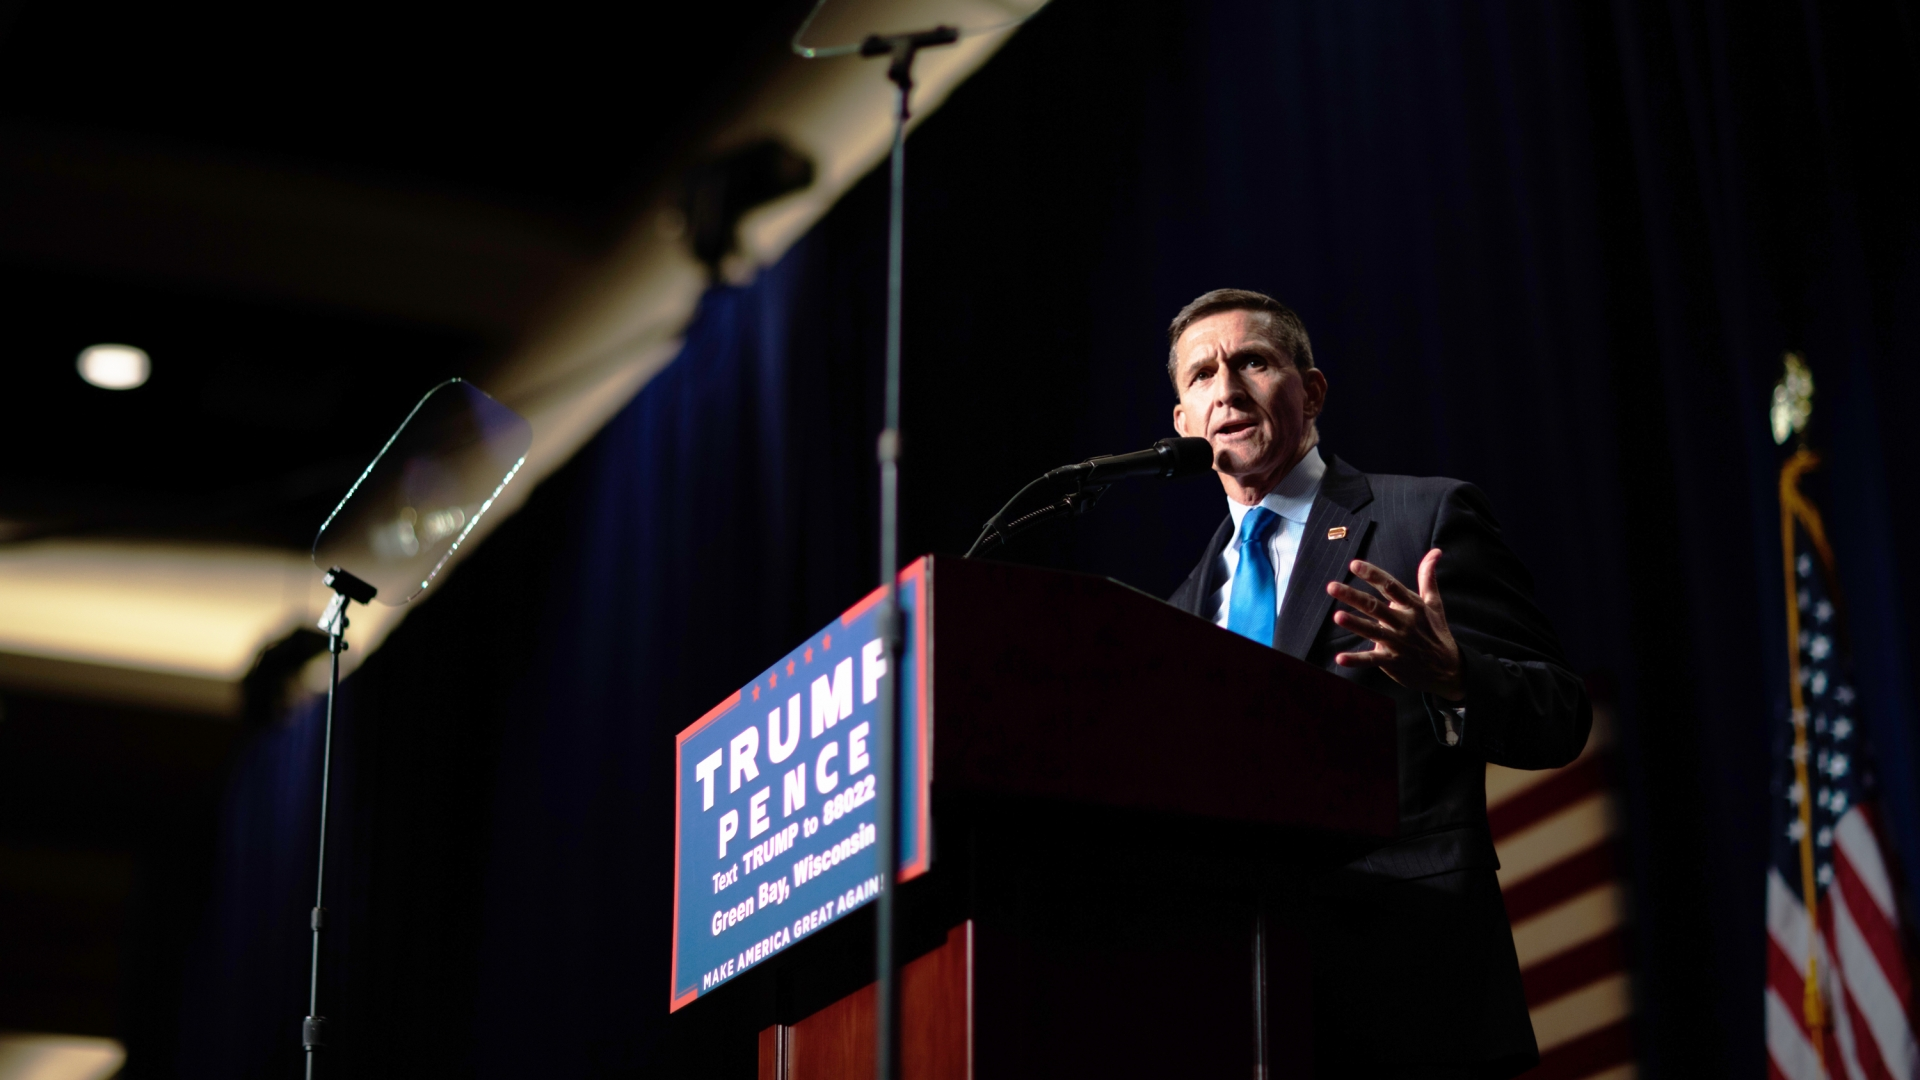 Retired General Mike Flynn at a rally for Donald Trump in Green Bay, Wisconsin, October 17, 2016. (Credit: David Hume Kennerly/Getty Images)